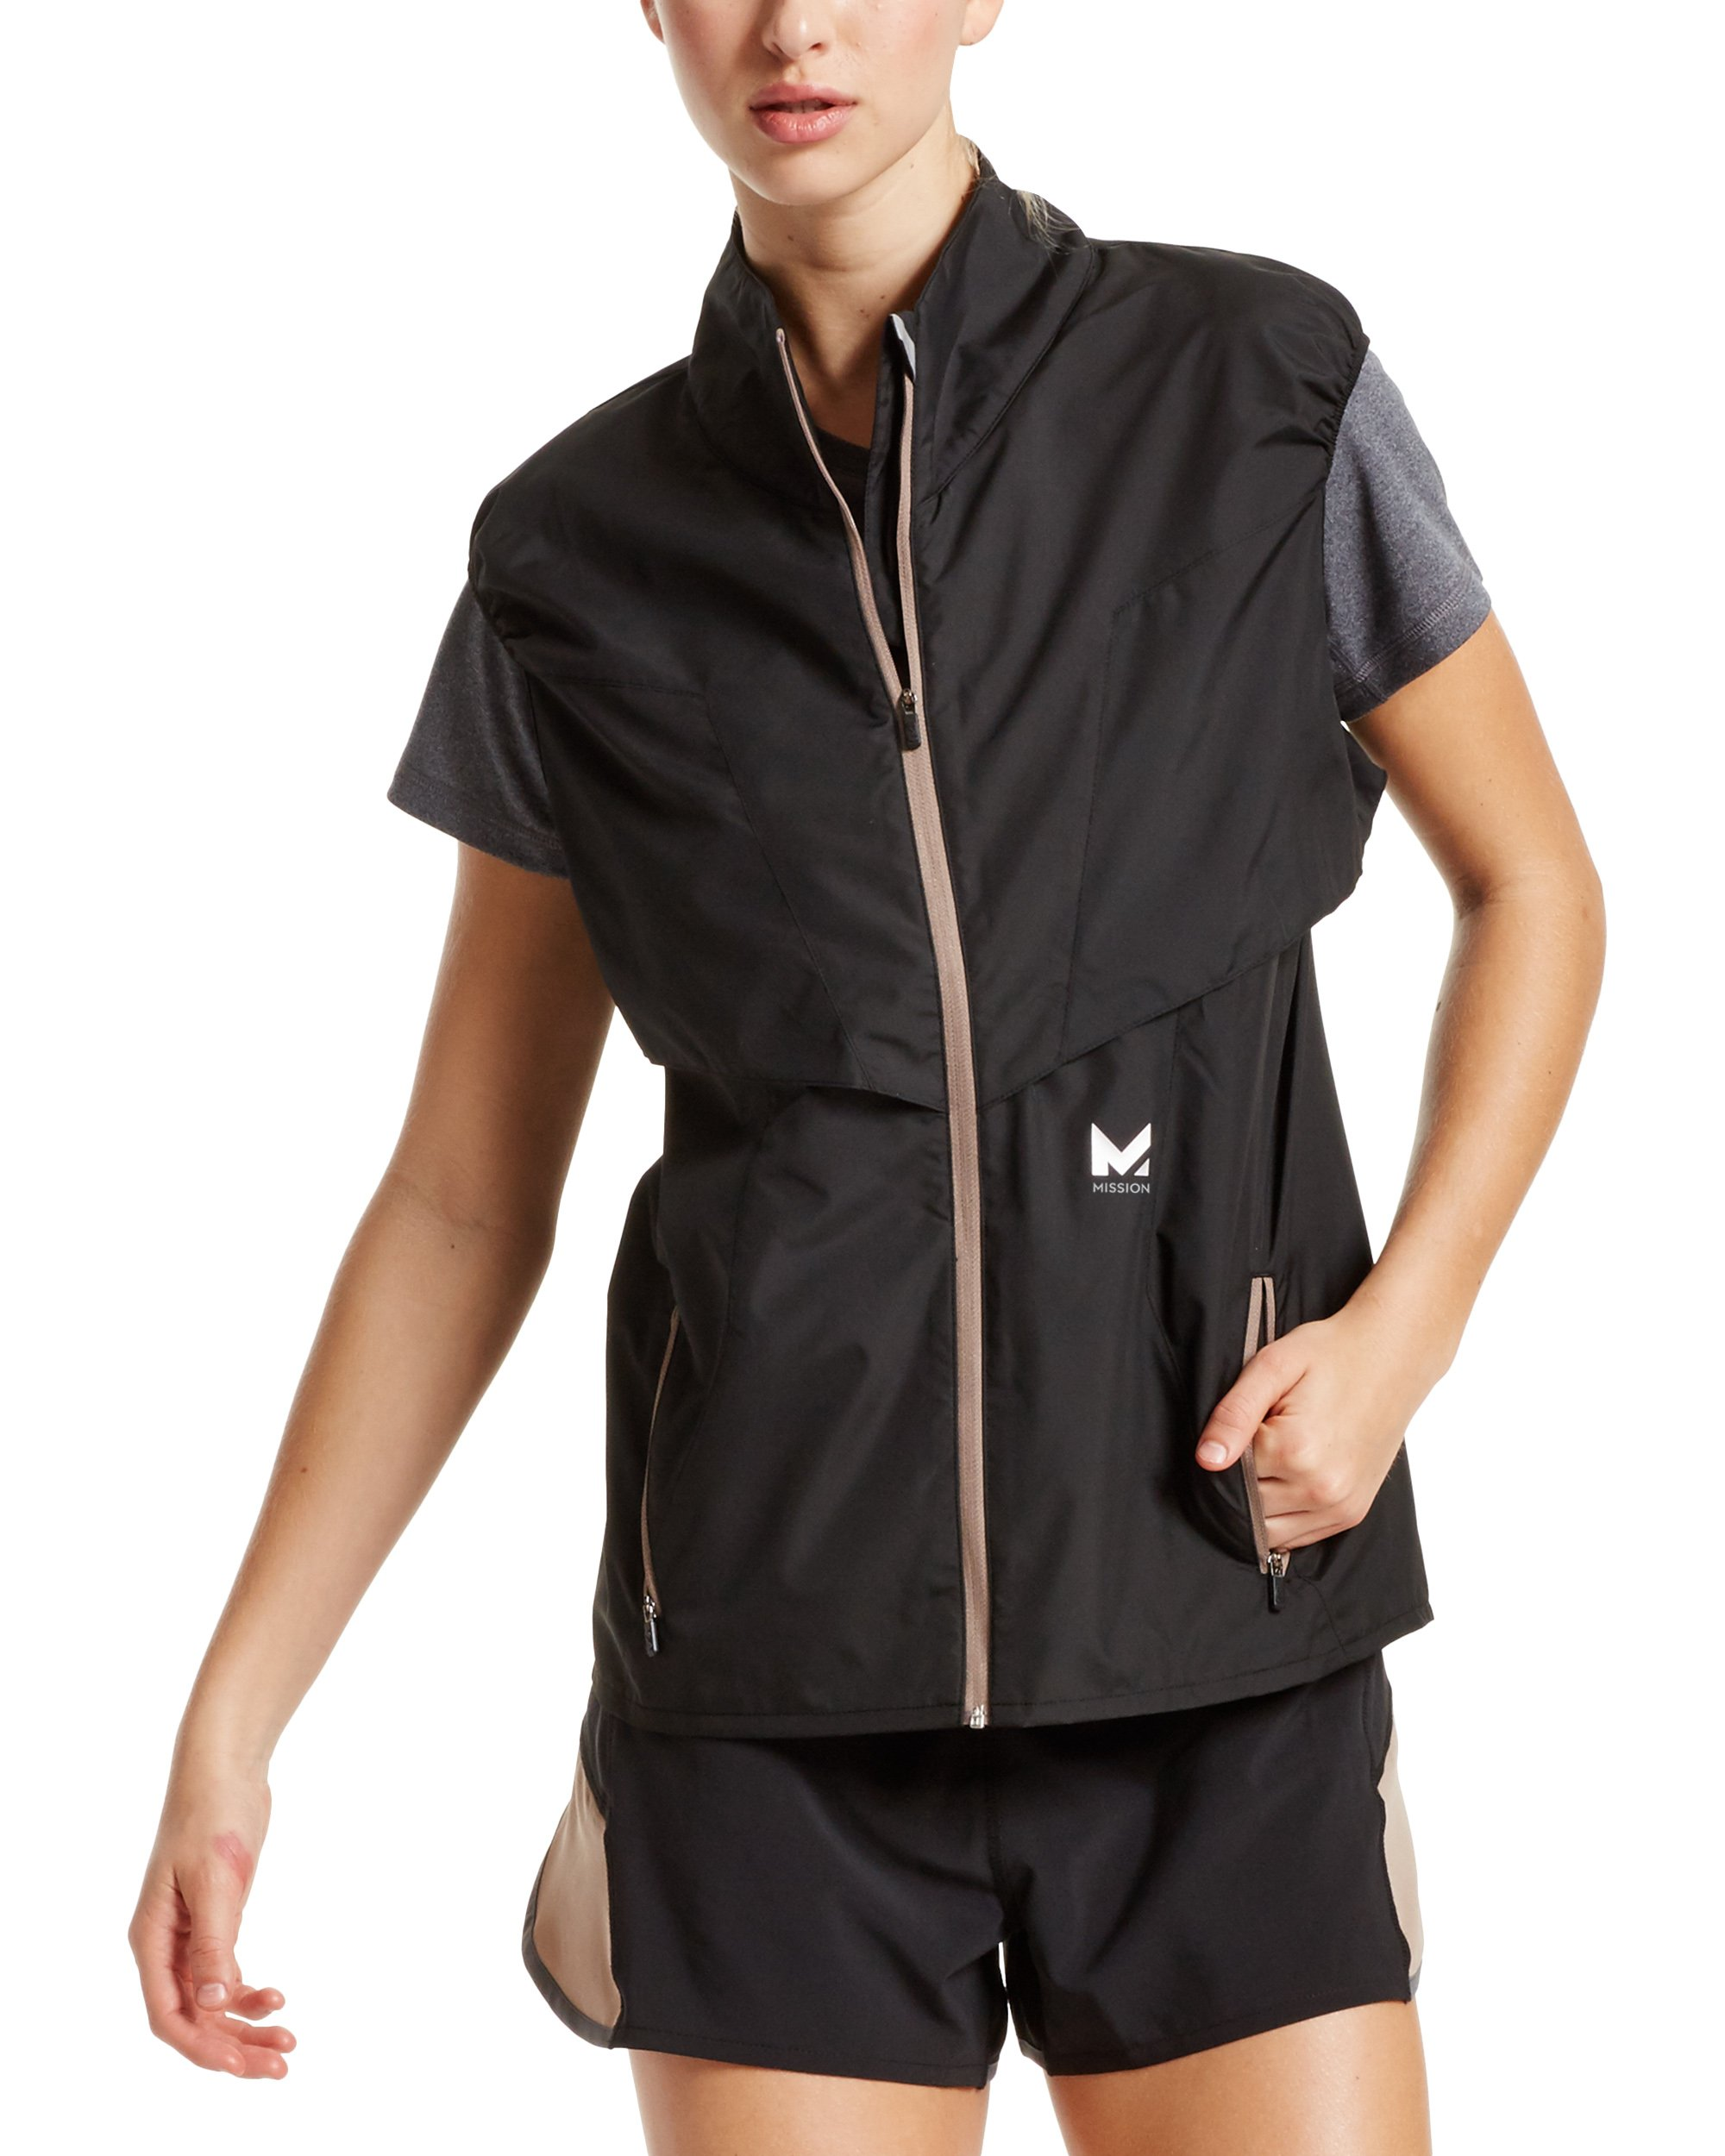 Mission Women's VaporActive Dynamo Running Vest, Moonless Night, Medium